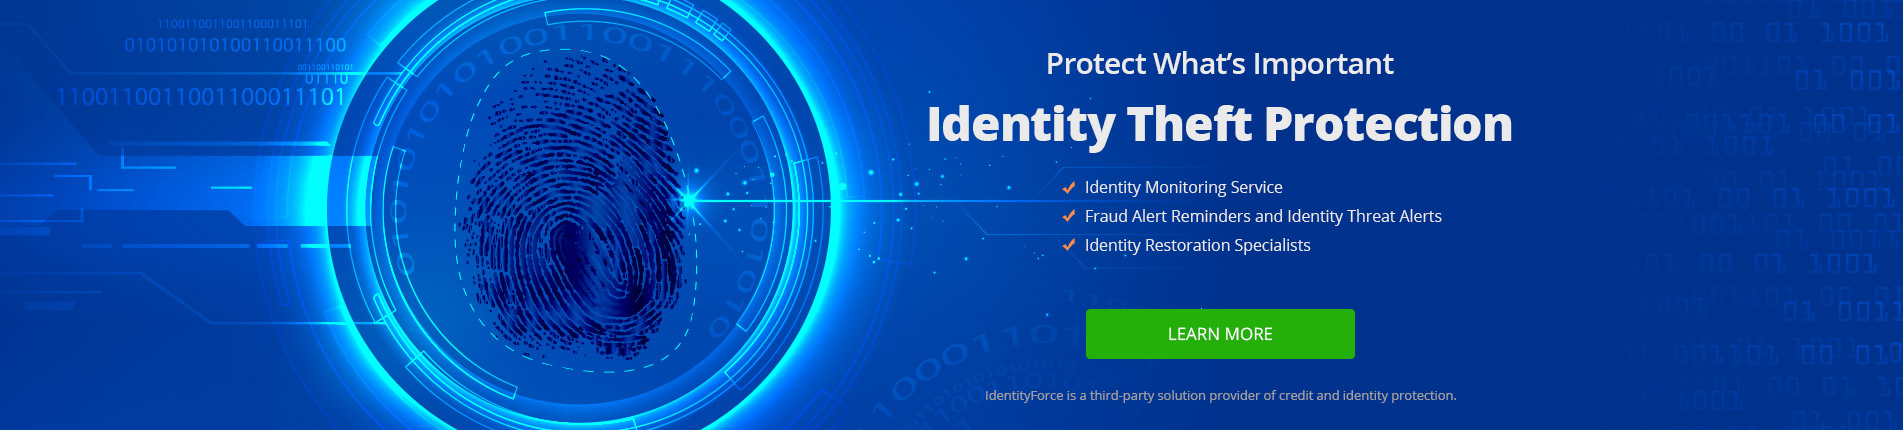 Identity Theft Protection